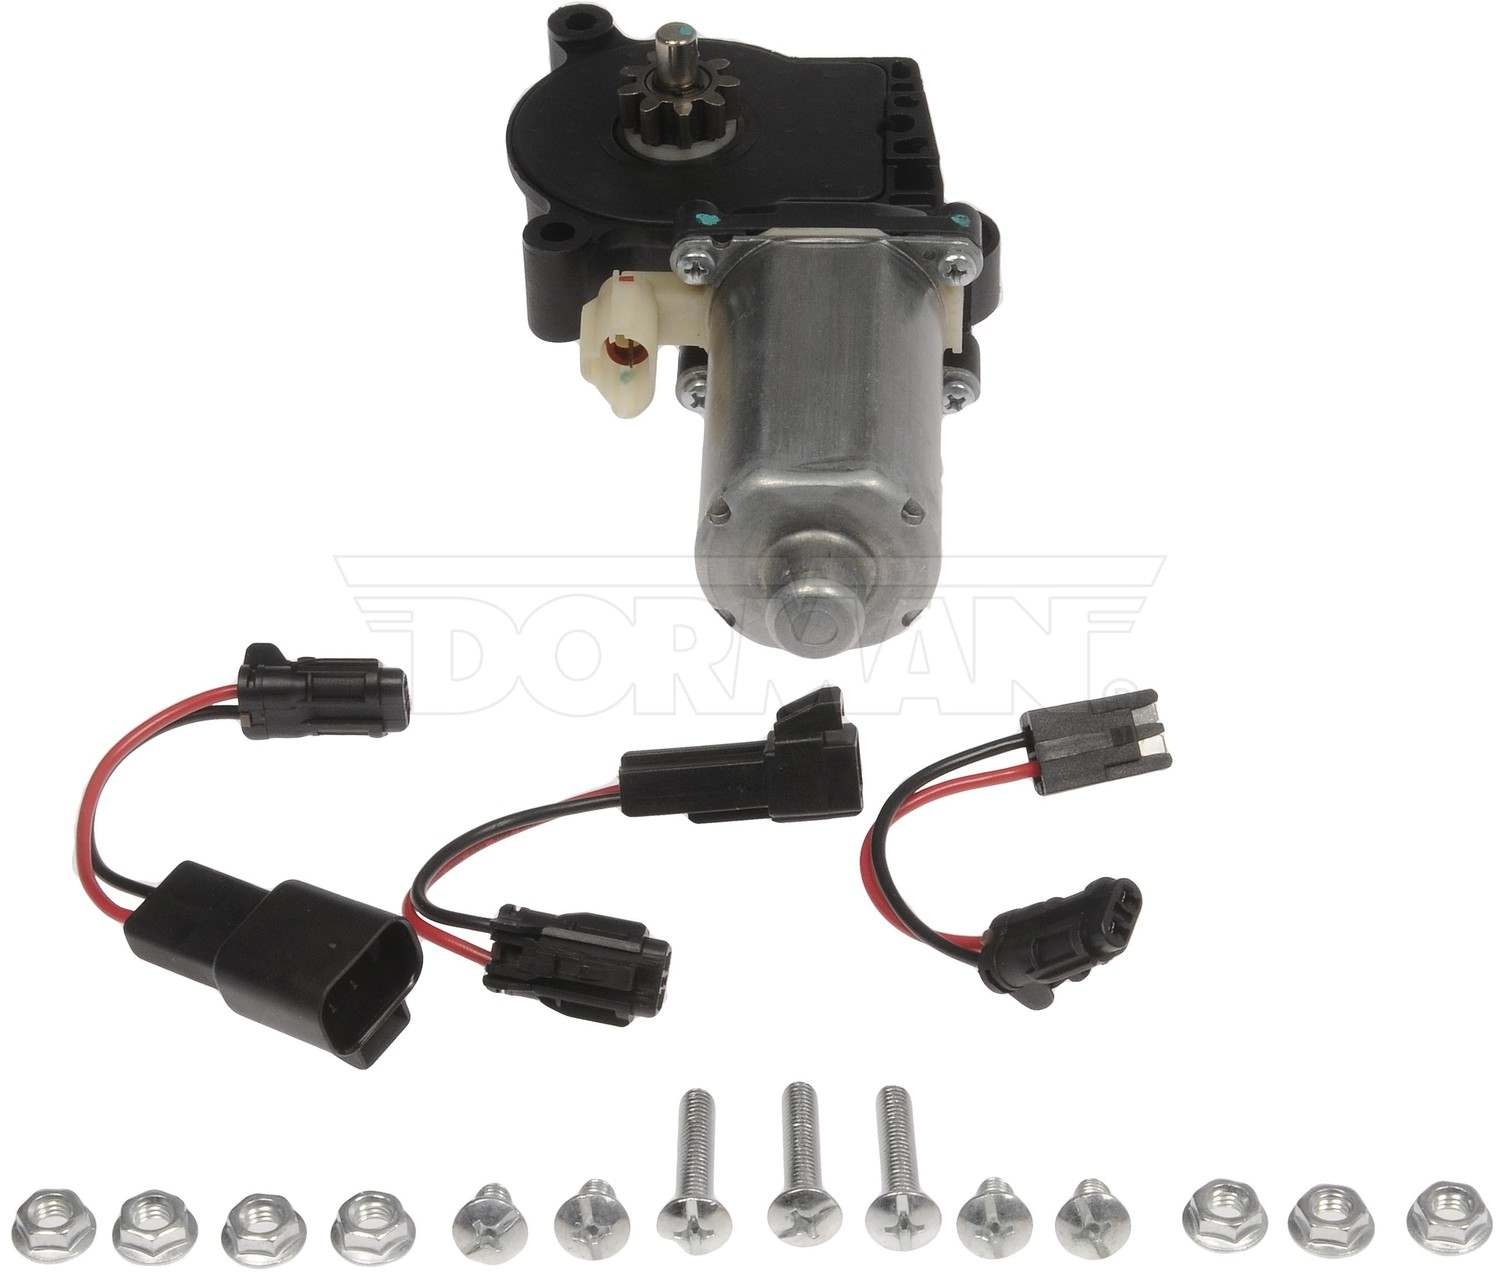 DORMAN OE SOLUTIONS - Power Window Motor (Front Left) - DRE 742-142